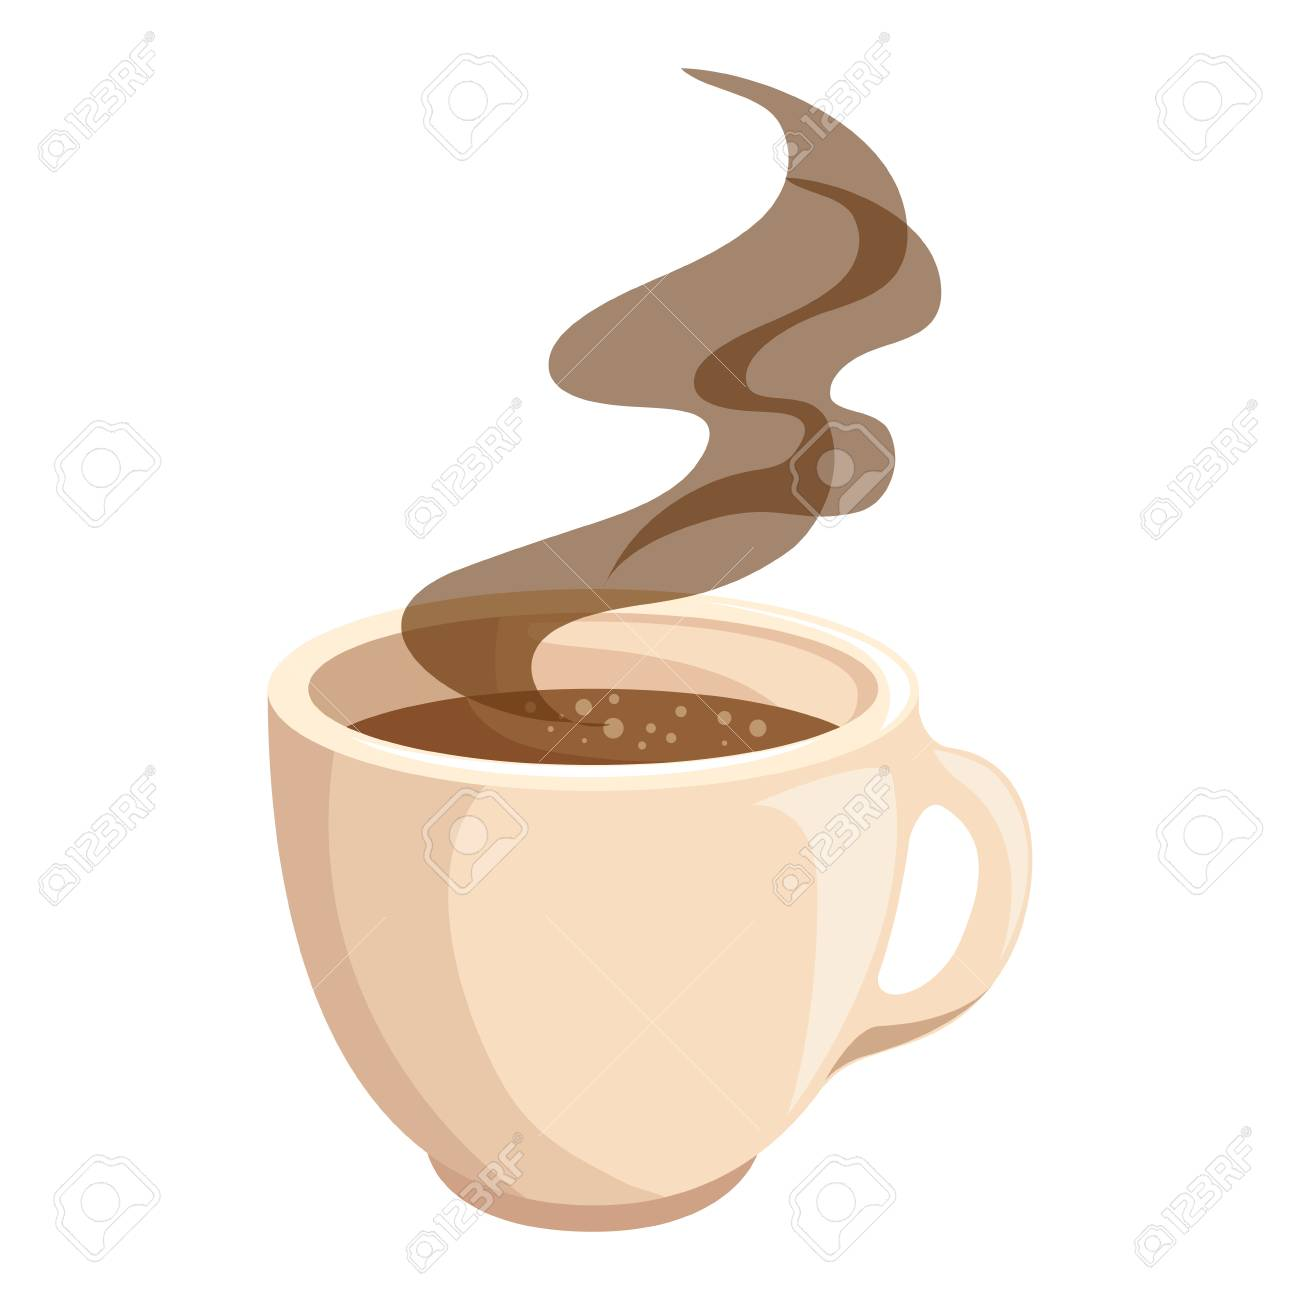 hot drink of chocolate icon vector illustration graphic design - 80722983